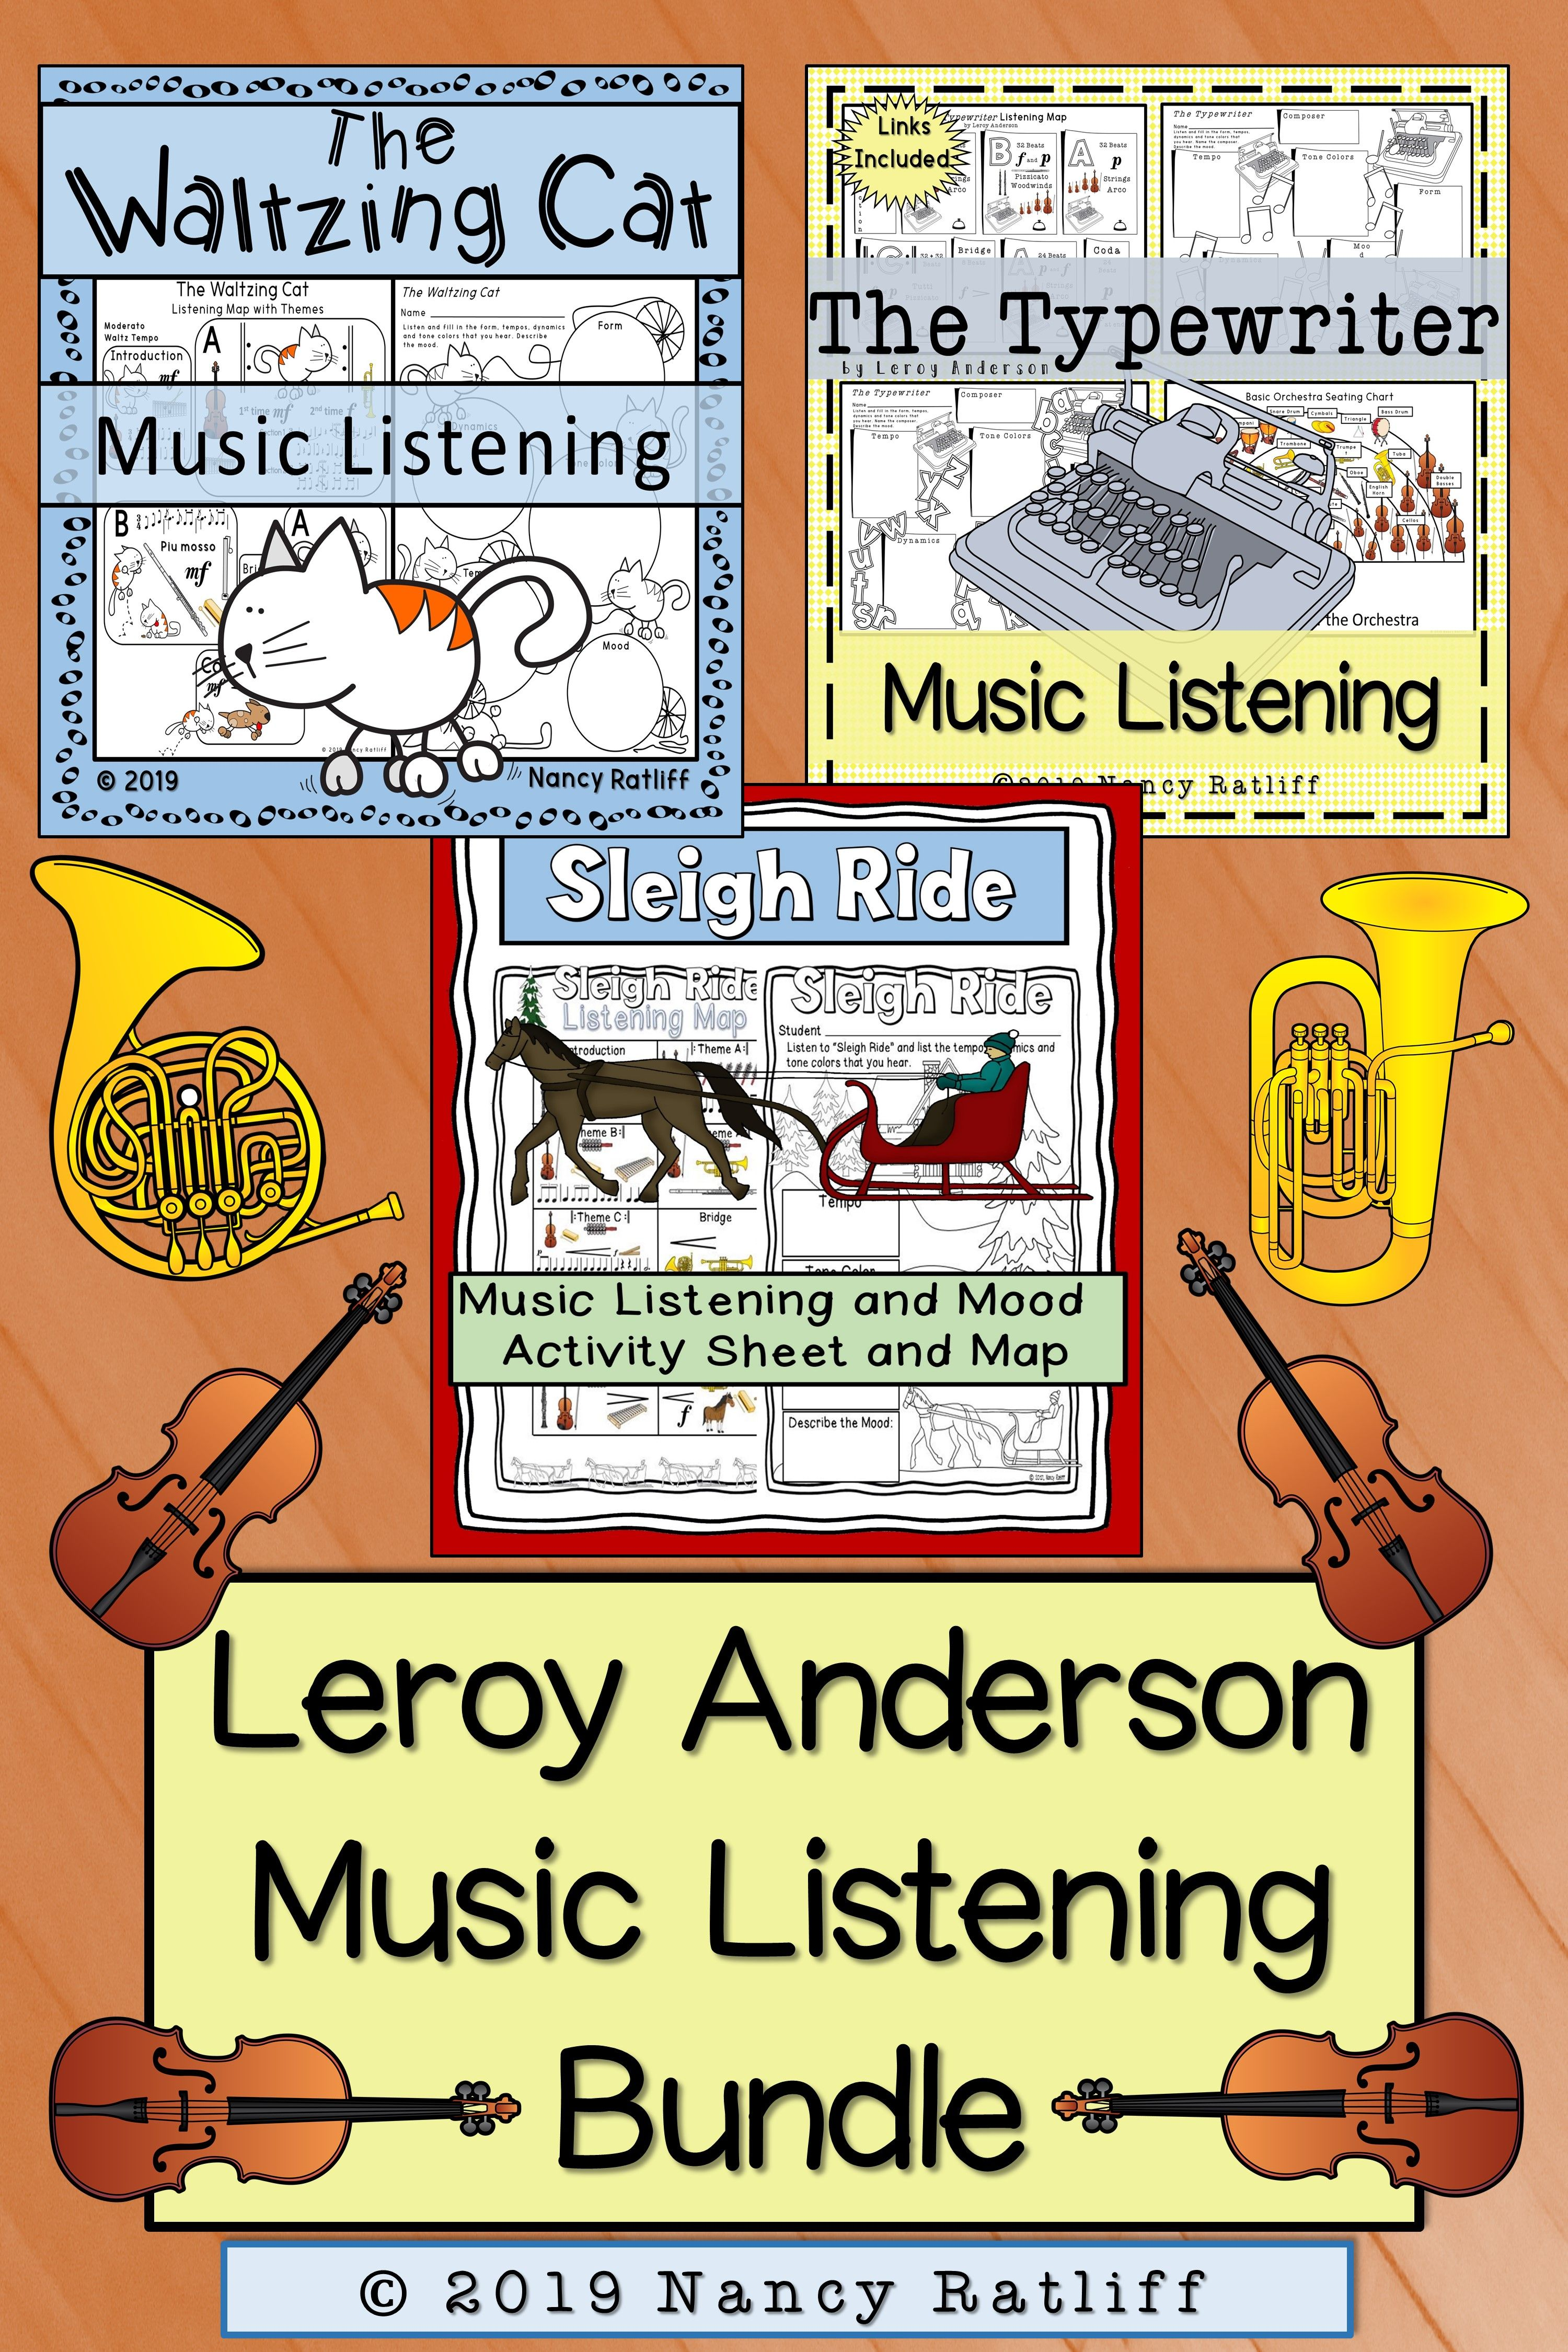 Leroy Anderson Music Listening Bundle The Typewriter